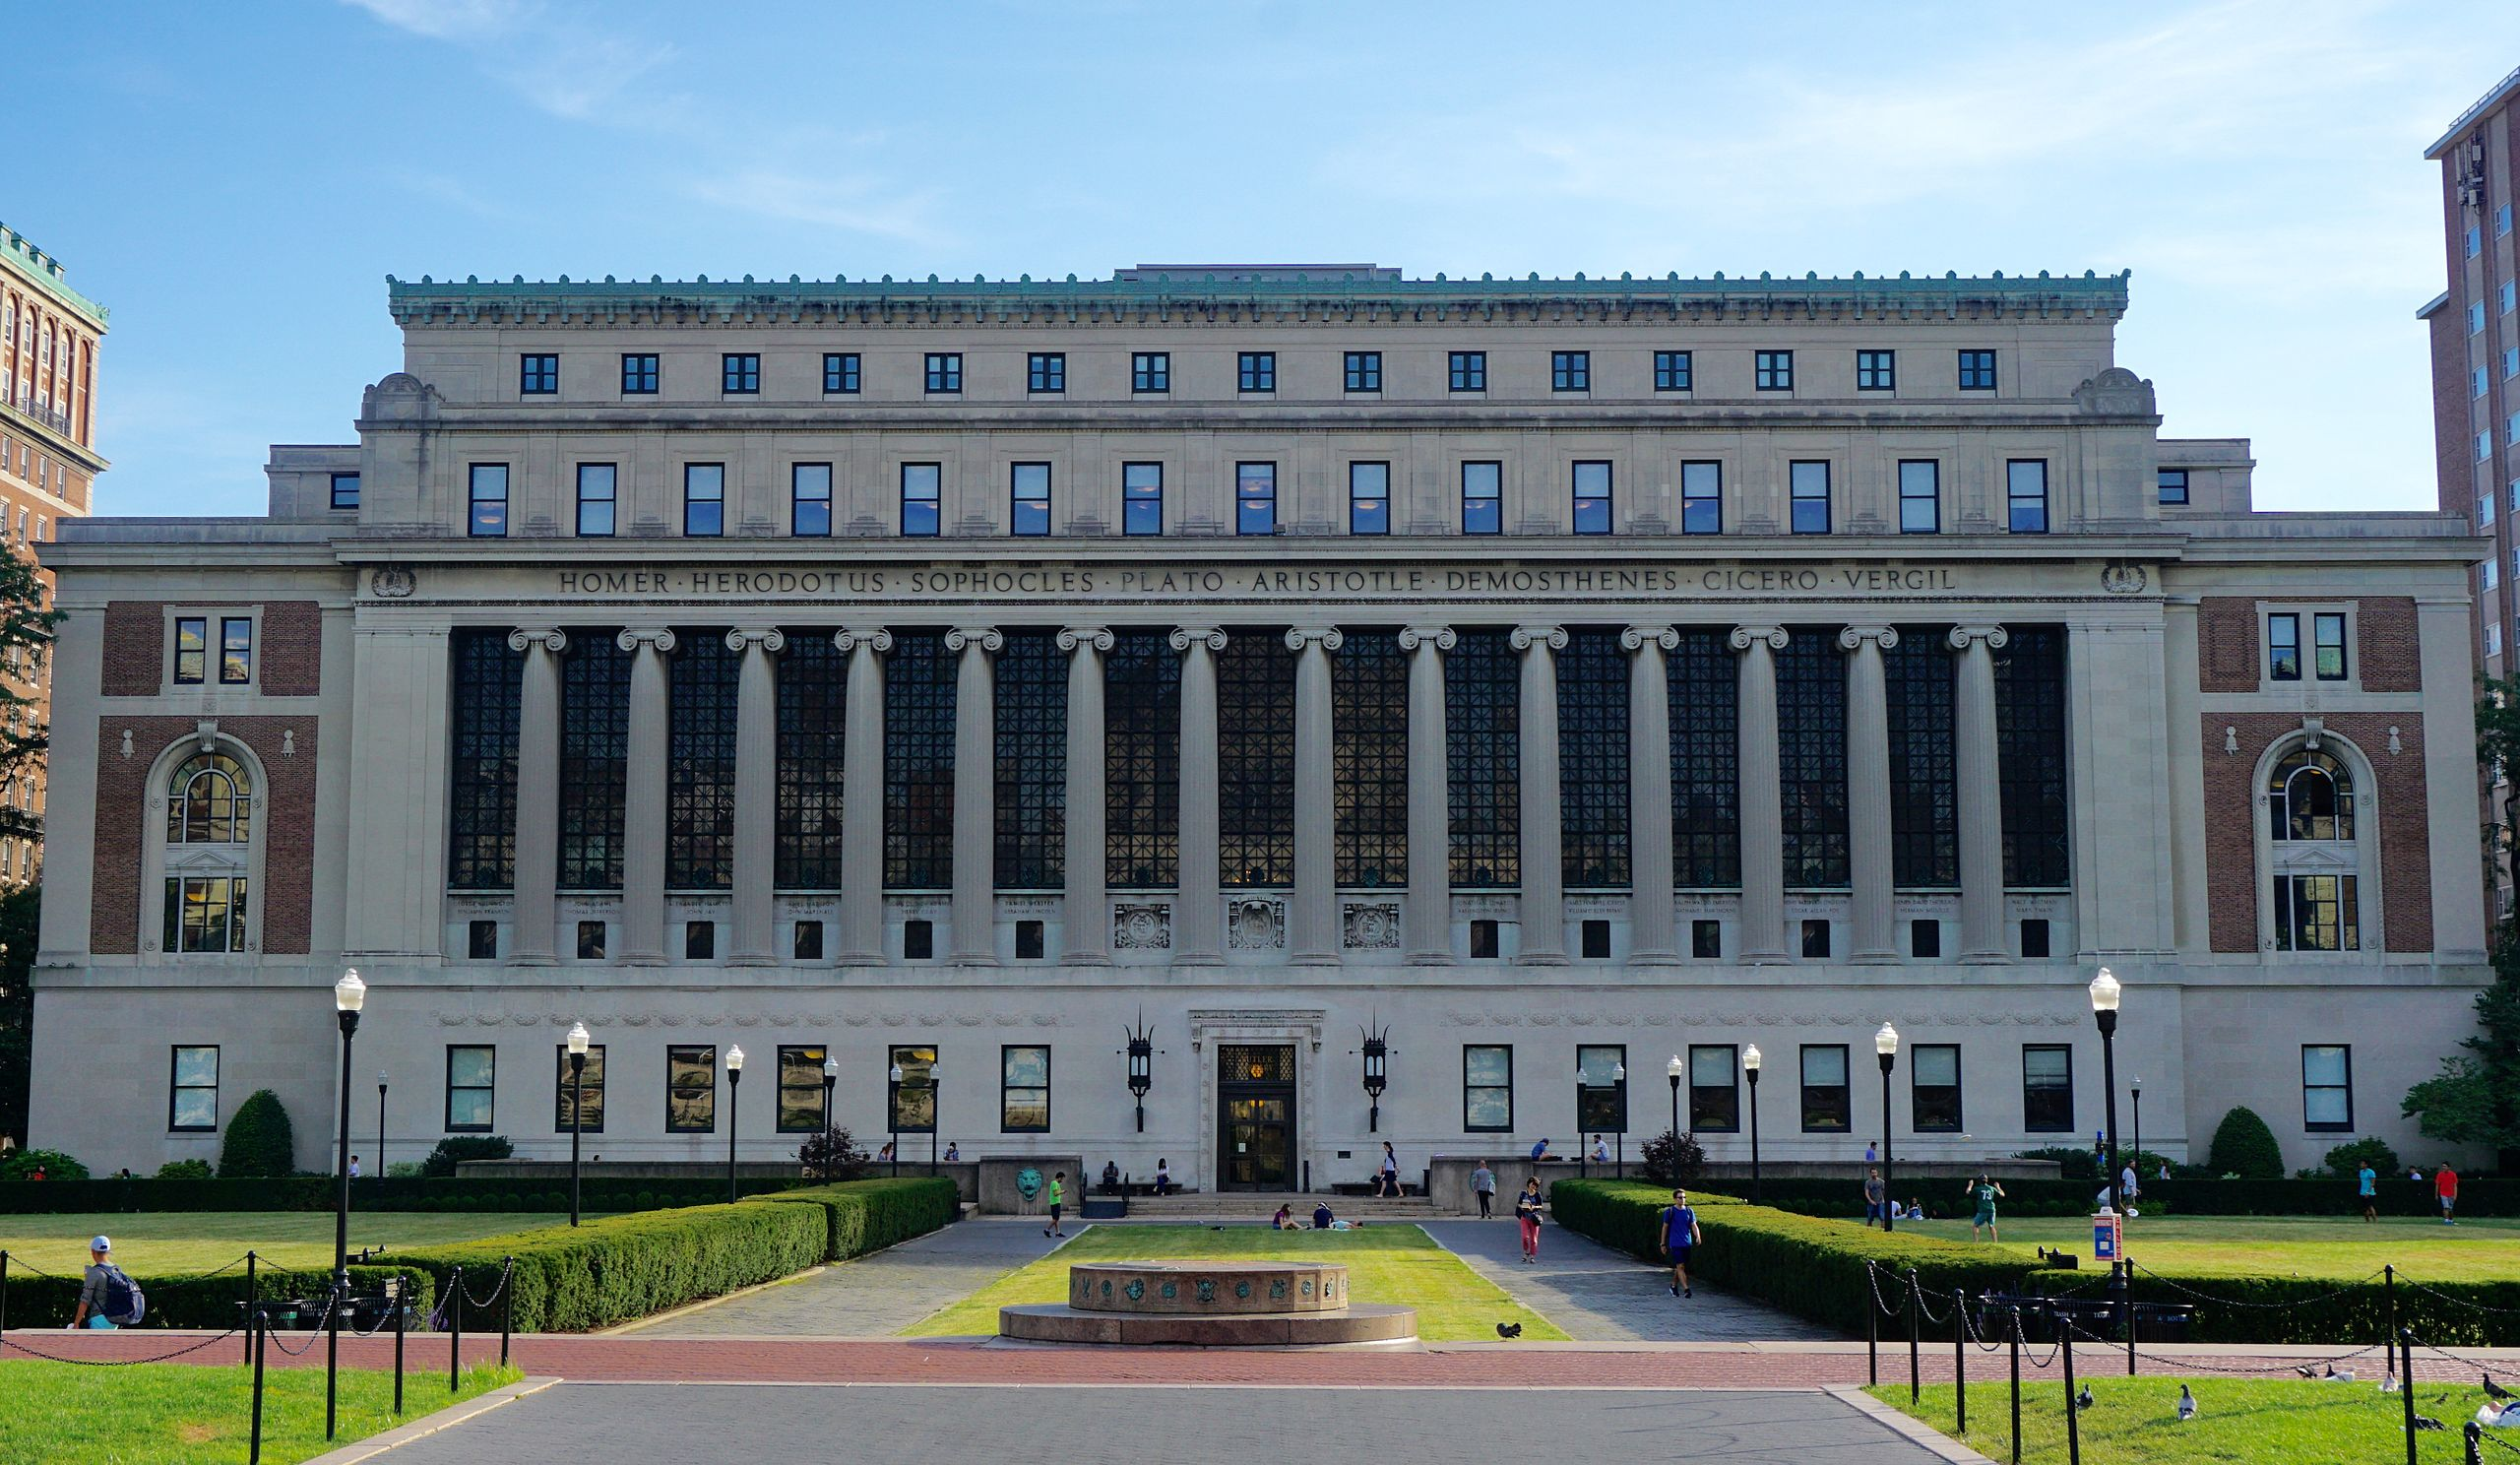 Press Release: LYRASIS and Columbia University Libraries Announce New Partnership to bring eBooks to Academic Library Communities